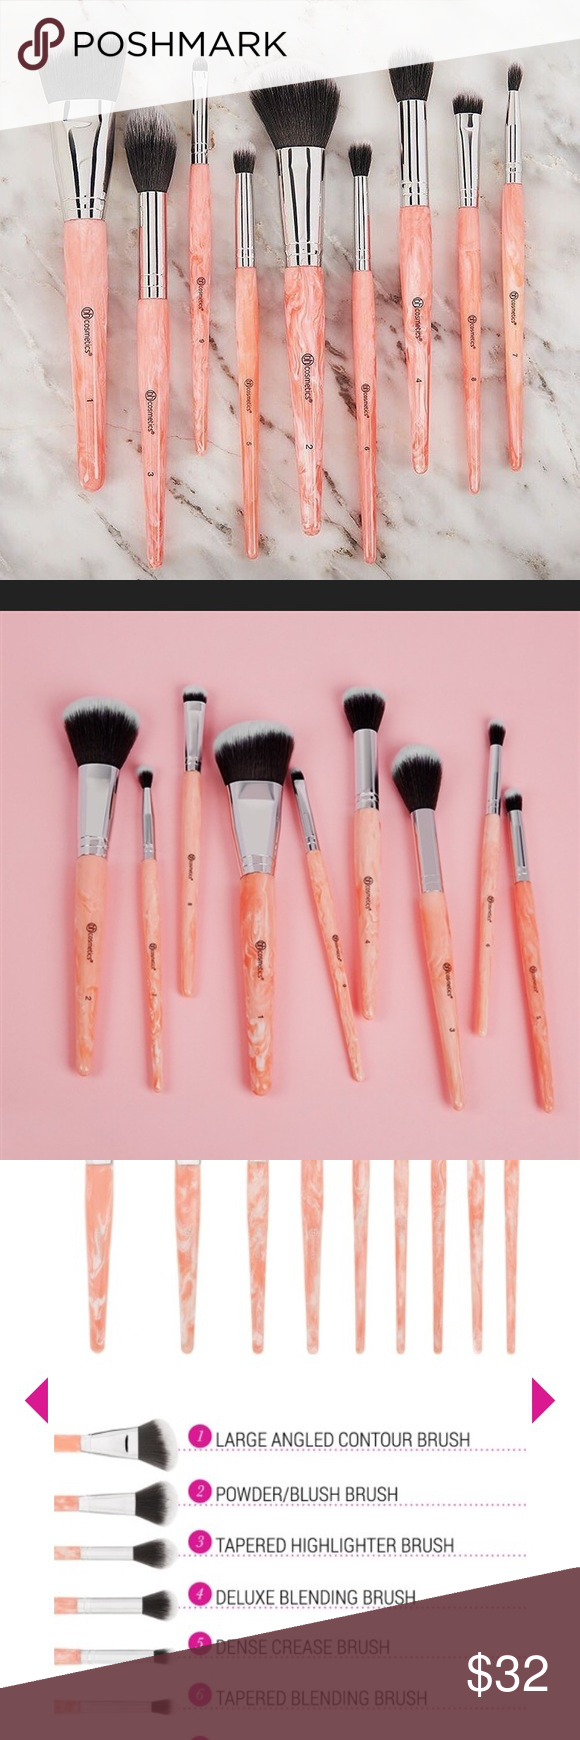 ️BH limited E ! 9Pc Rose quartz brushset NIB🌷 Boutique